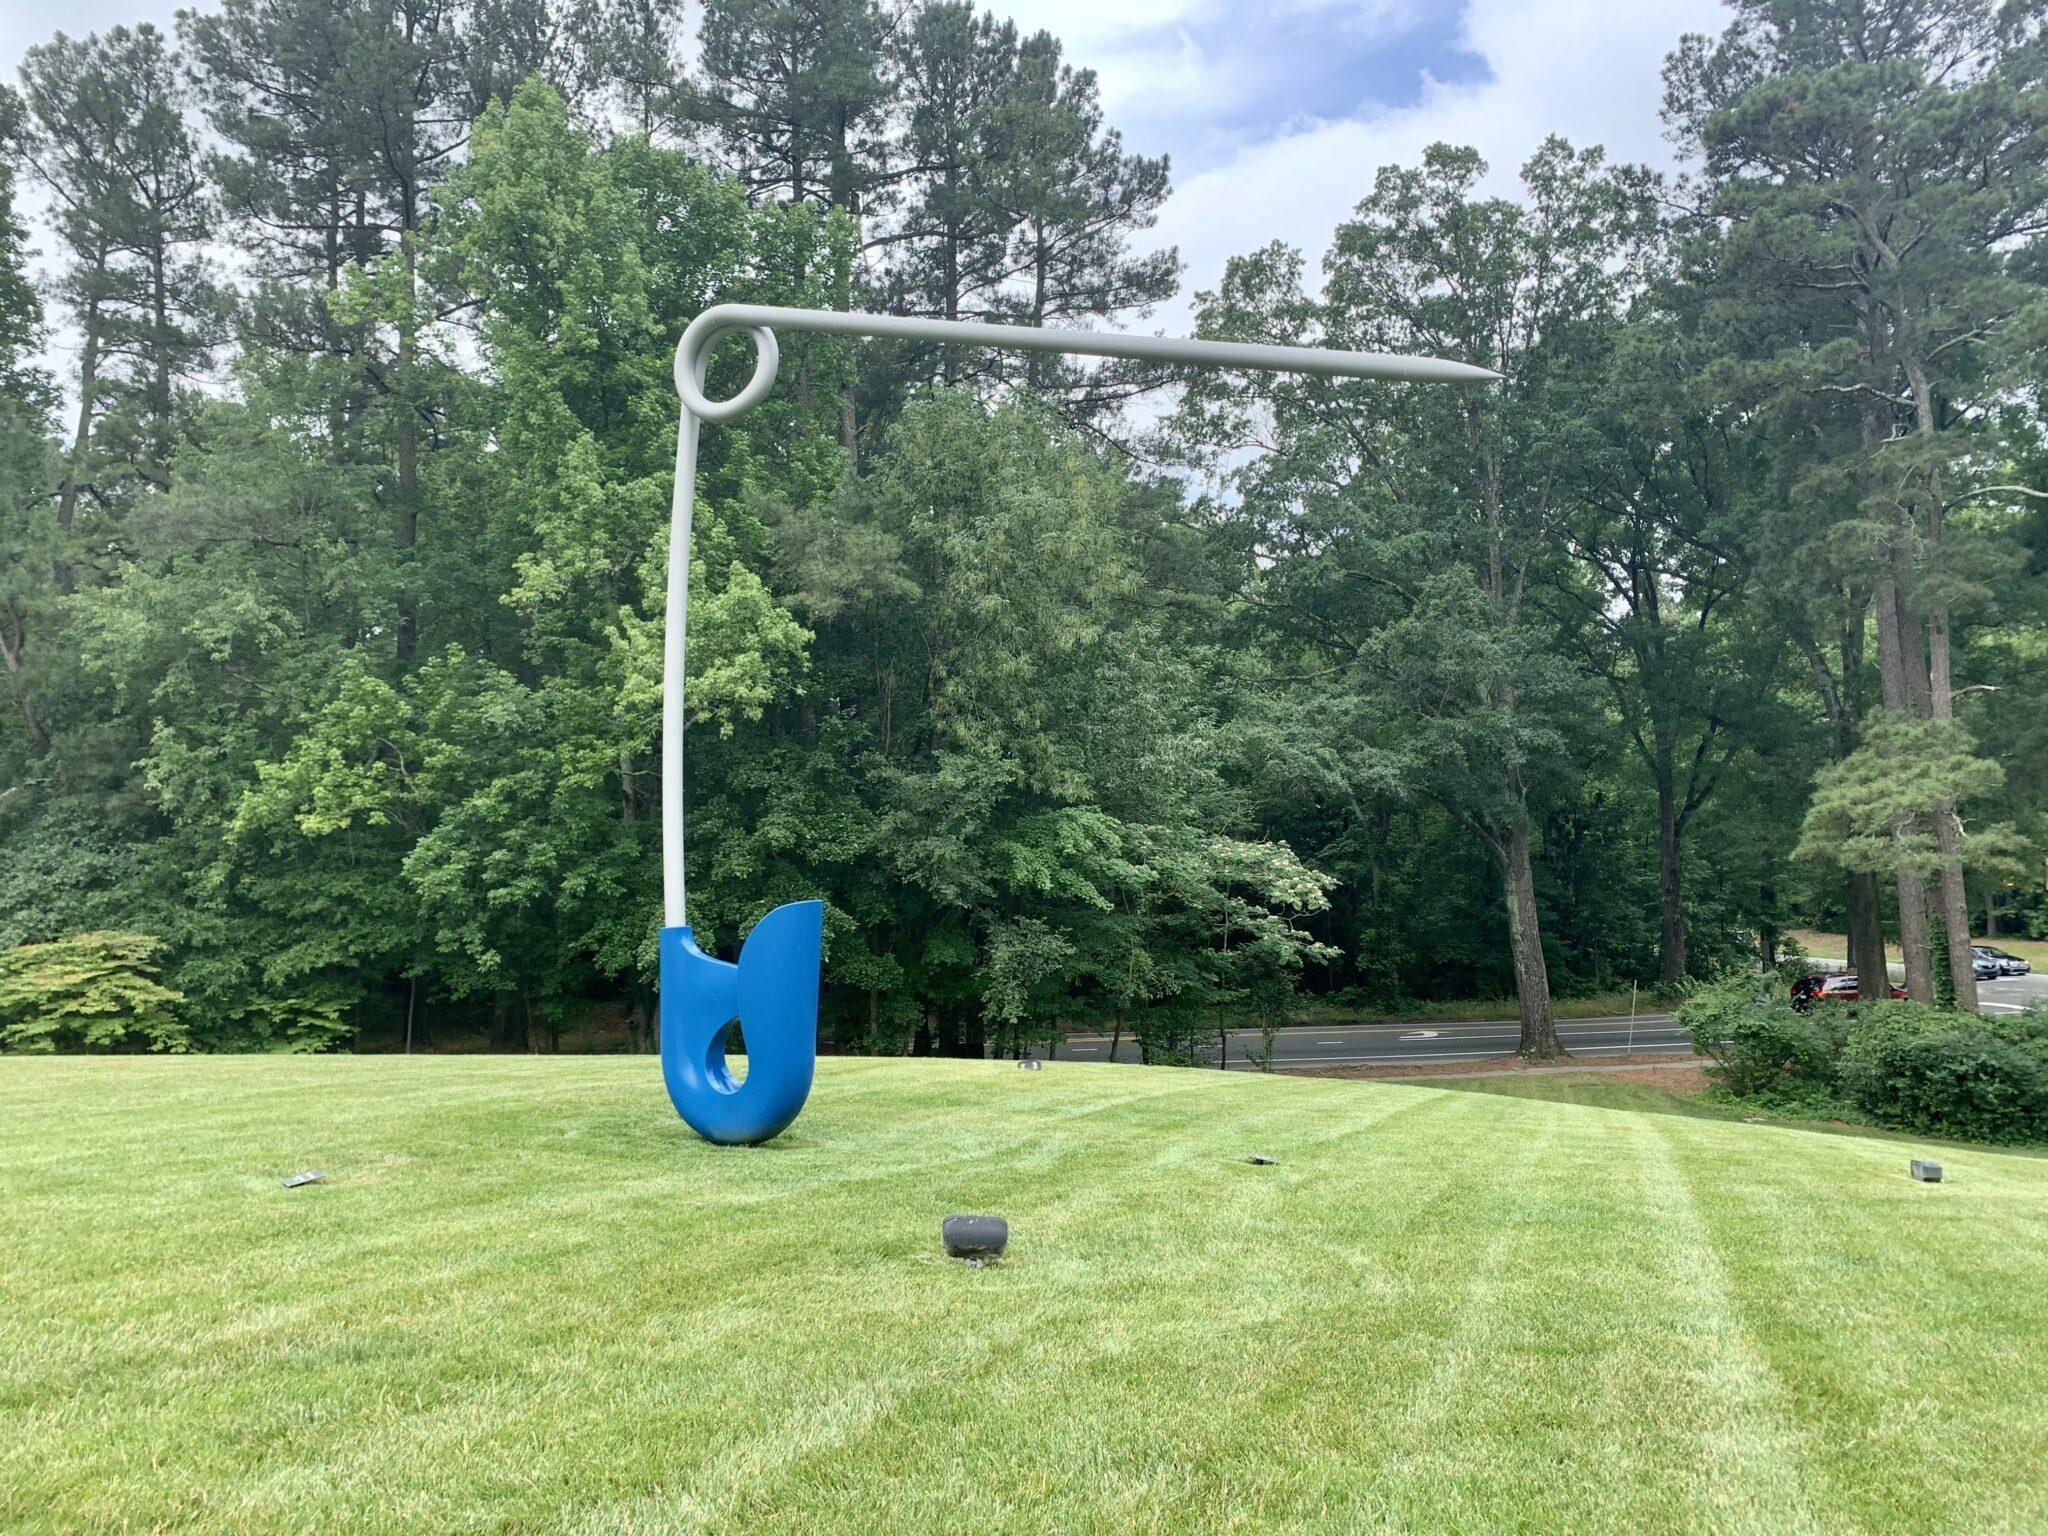 Giant safety pin statue